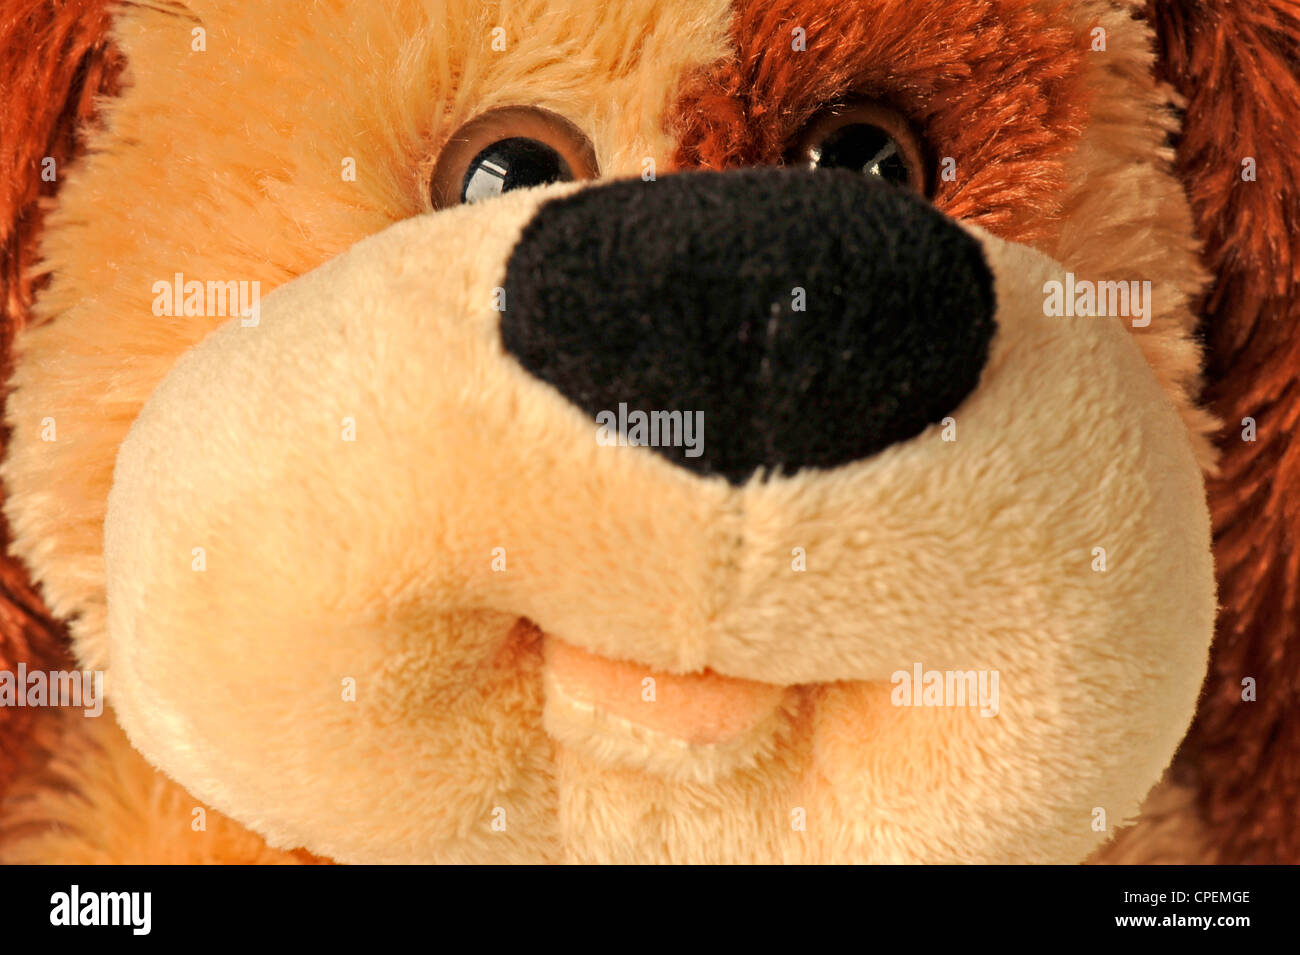 Close-up of a soft toy dog's face - Stock Image